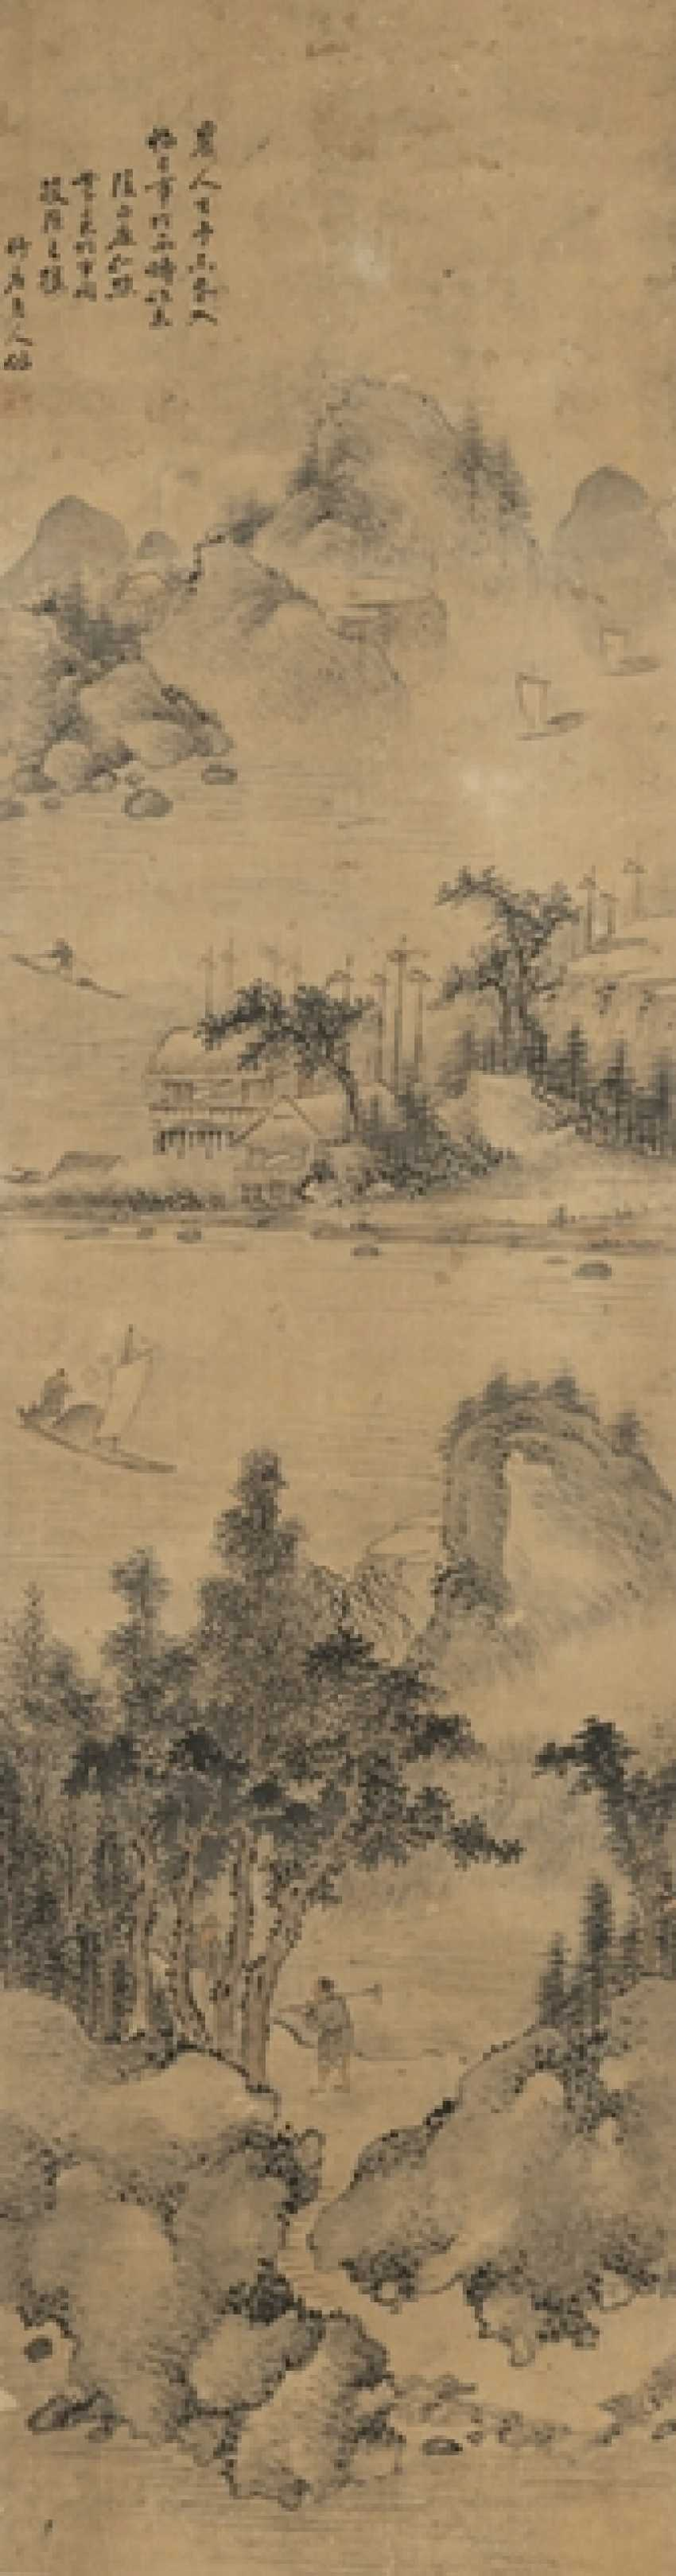 In the style of Shanghuan Zhou (1665 - after 1749), two rolls of Hanging - photo 2